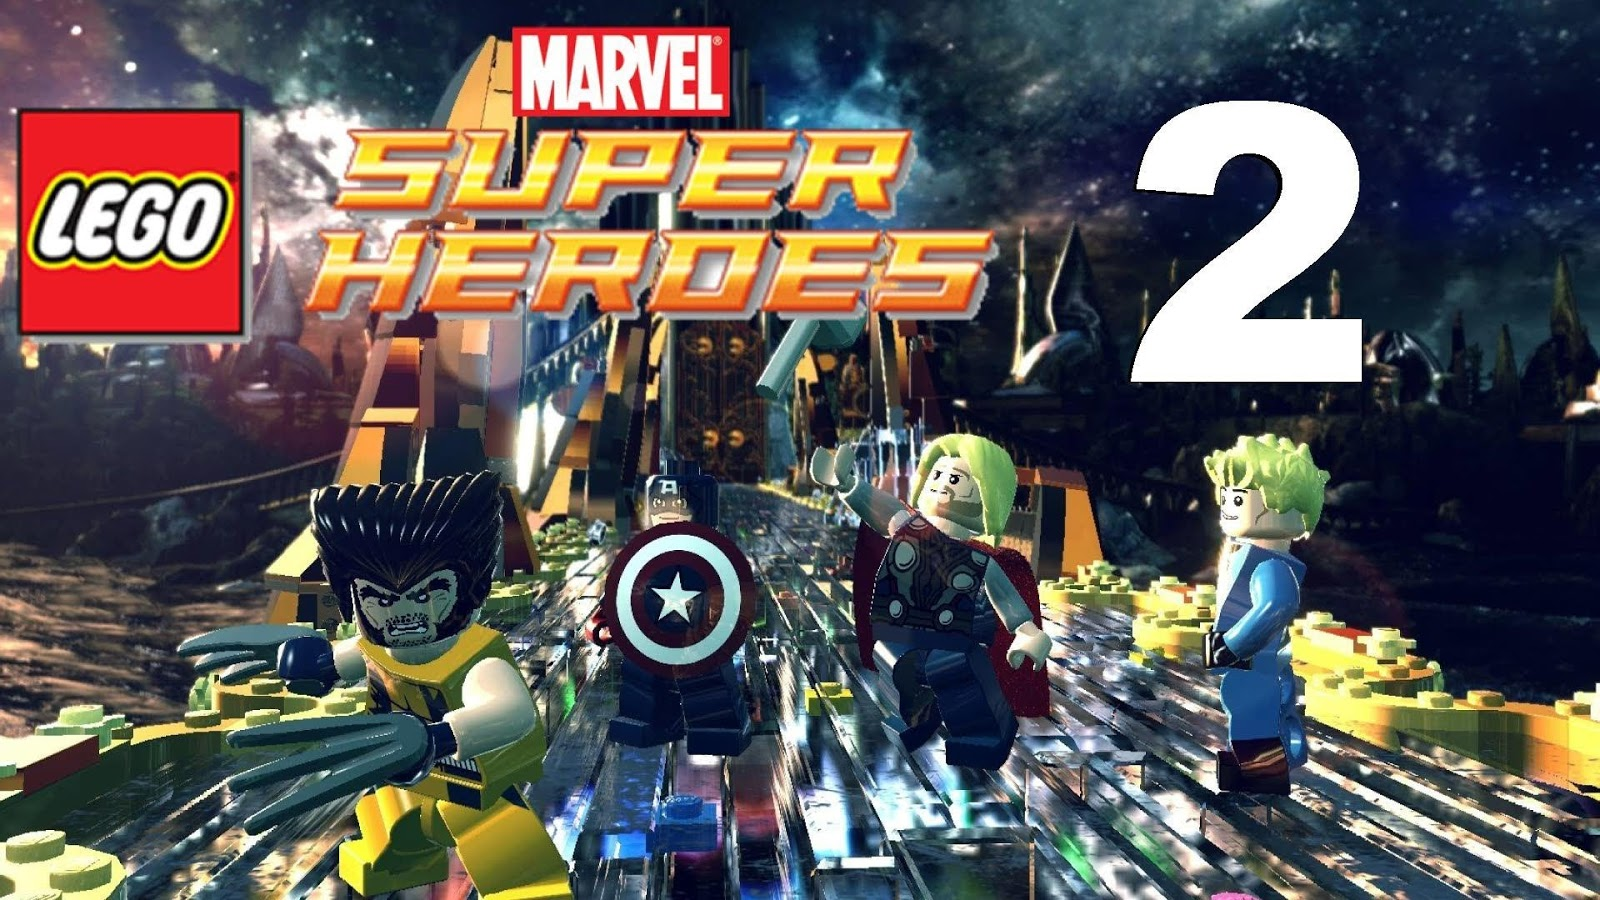 LEGO Marvel Super Heroes Game Online - Play for Free Now